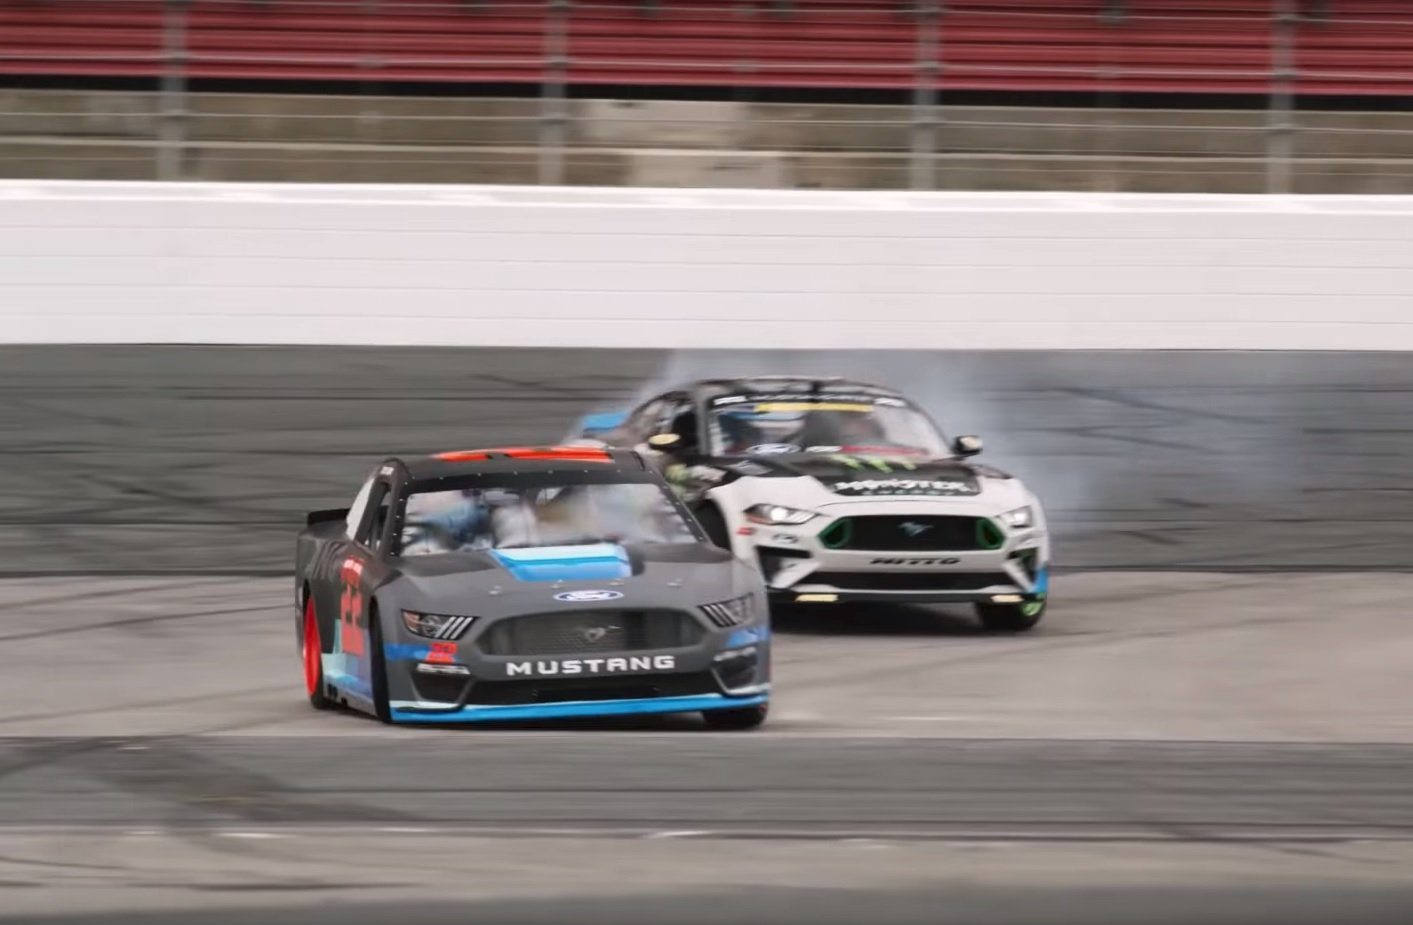 Watch: Vaughn Gittin Jr. Welcomes Joey Logan to Mustang in Style